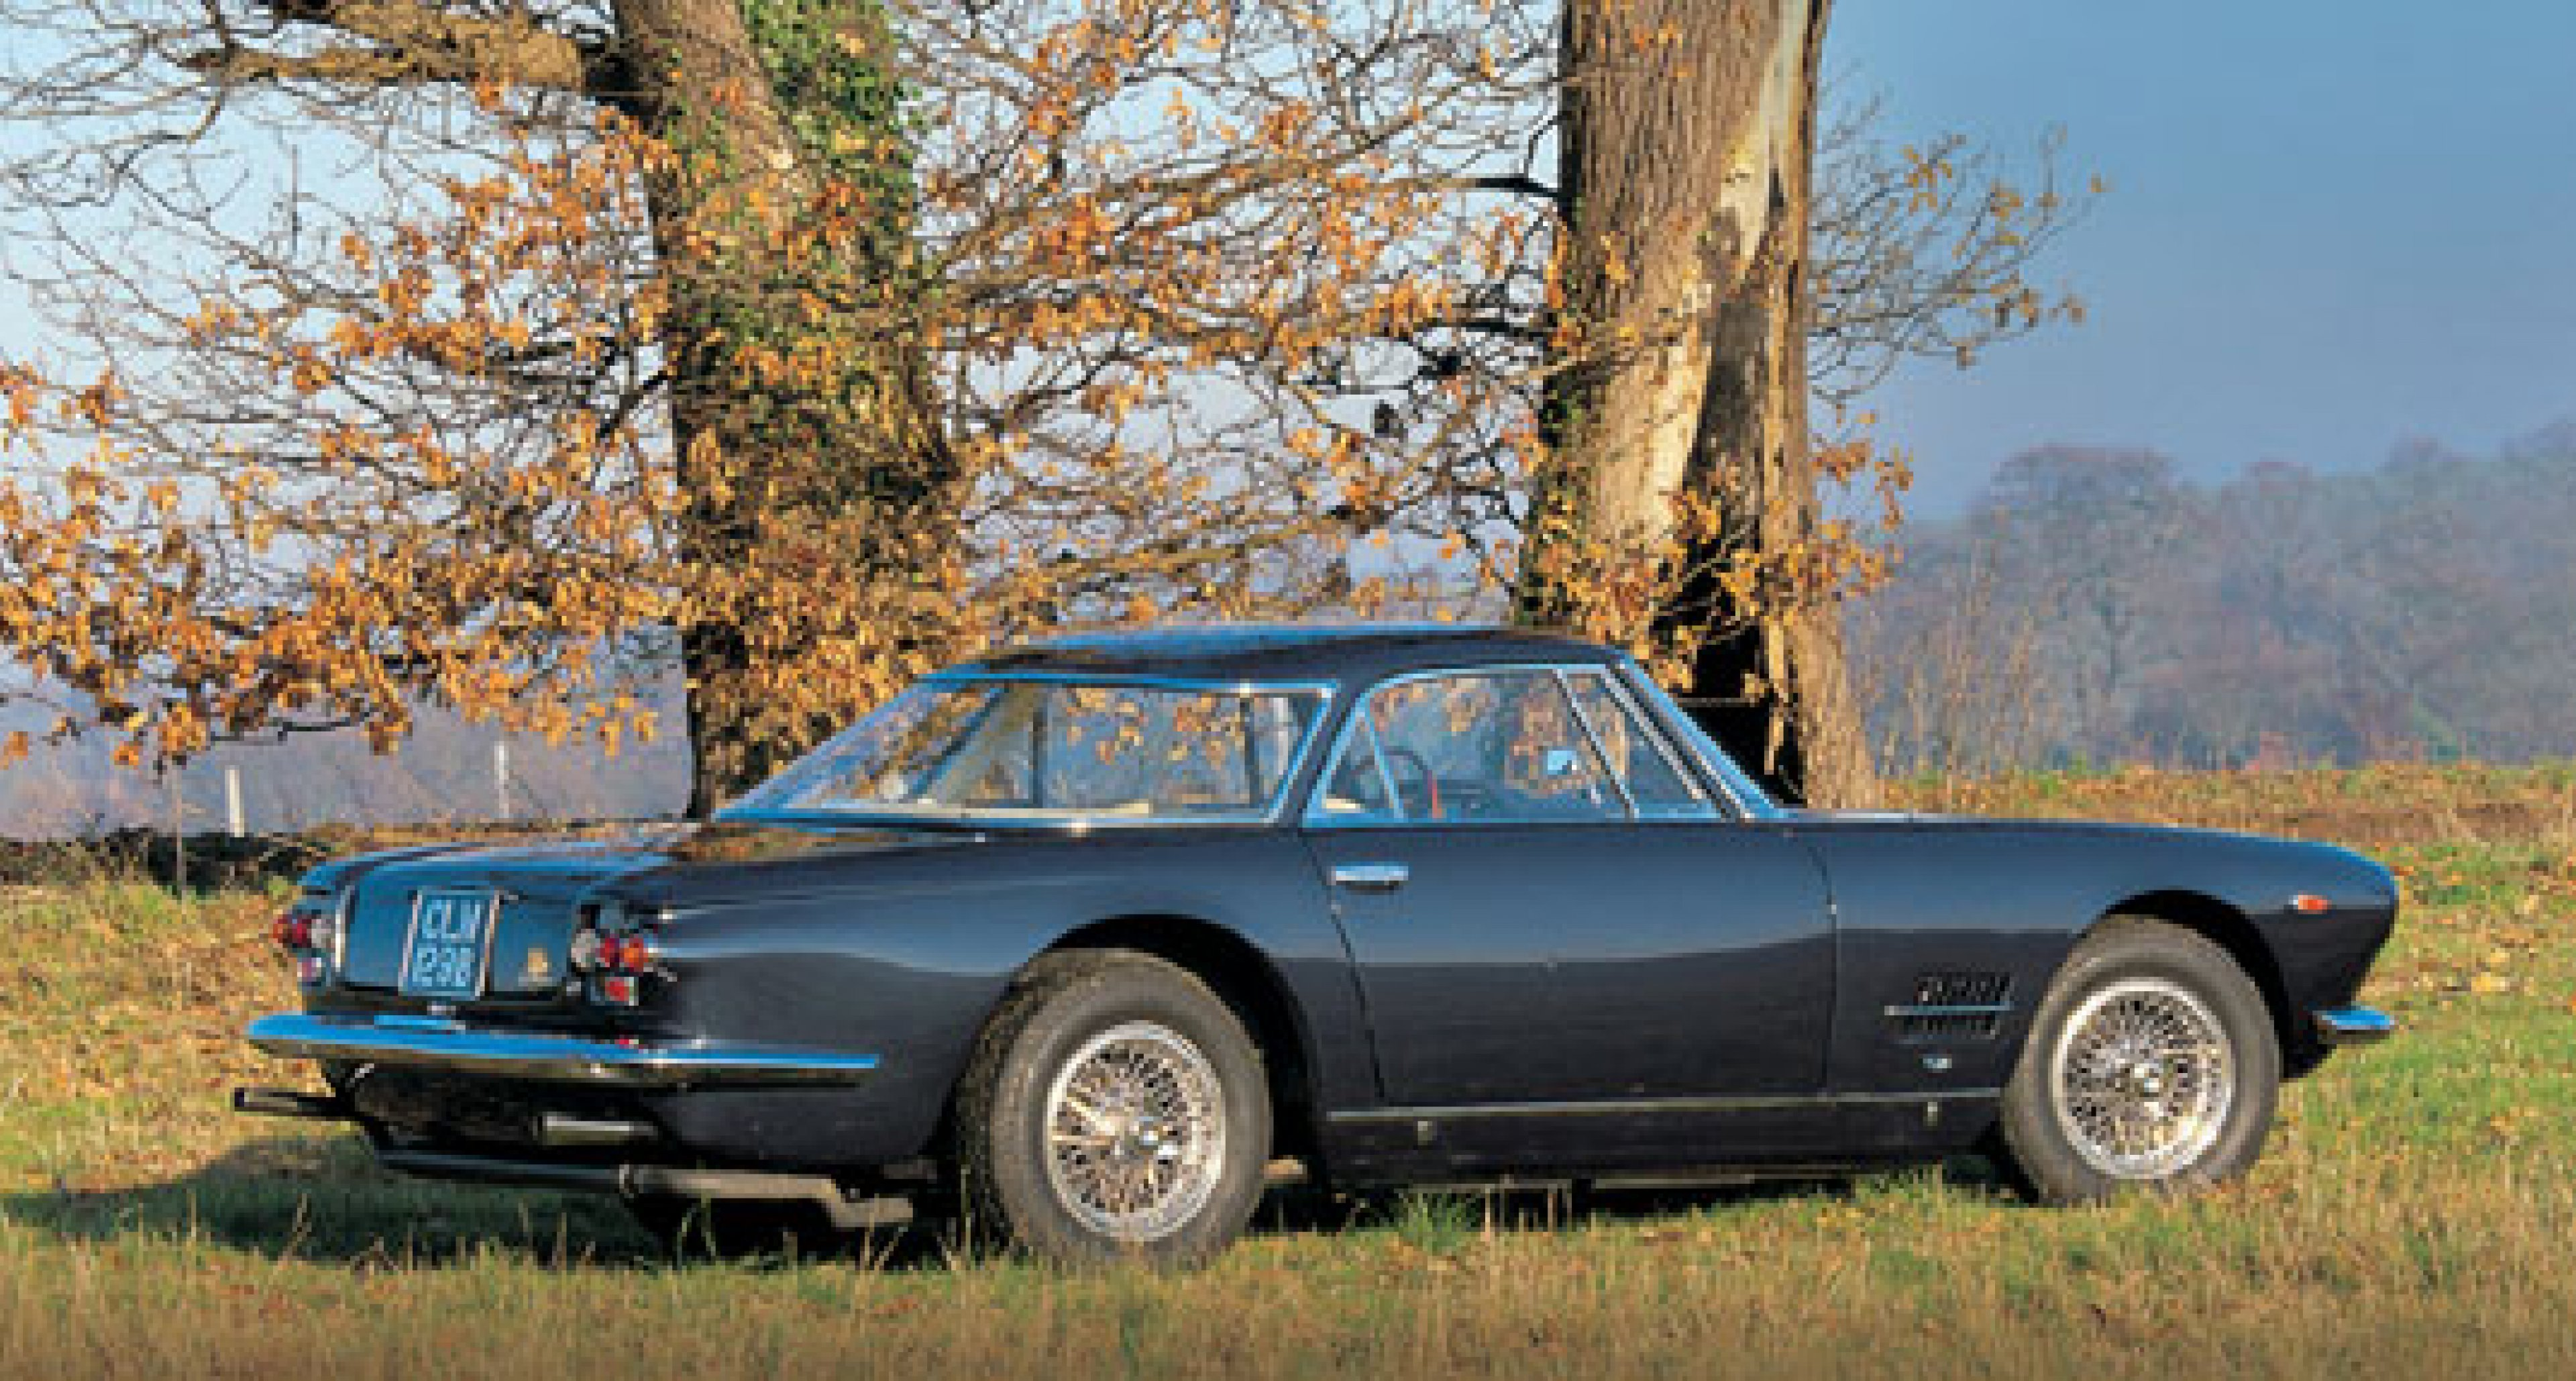 Maserati 5000GT - Fit for a King